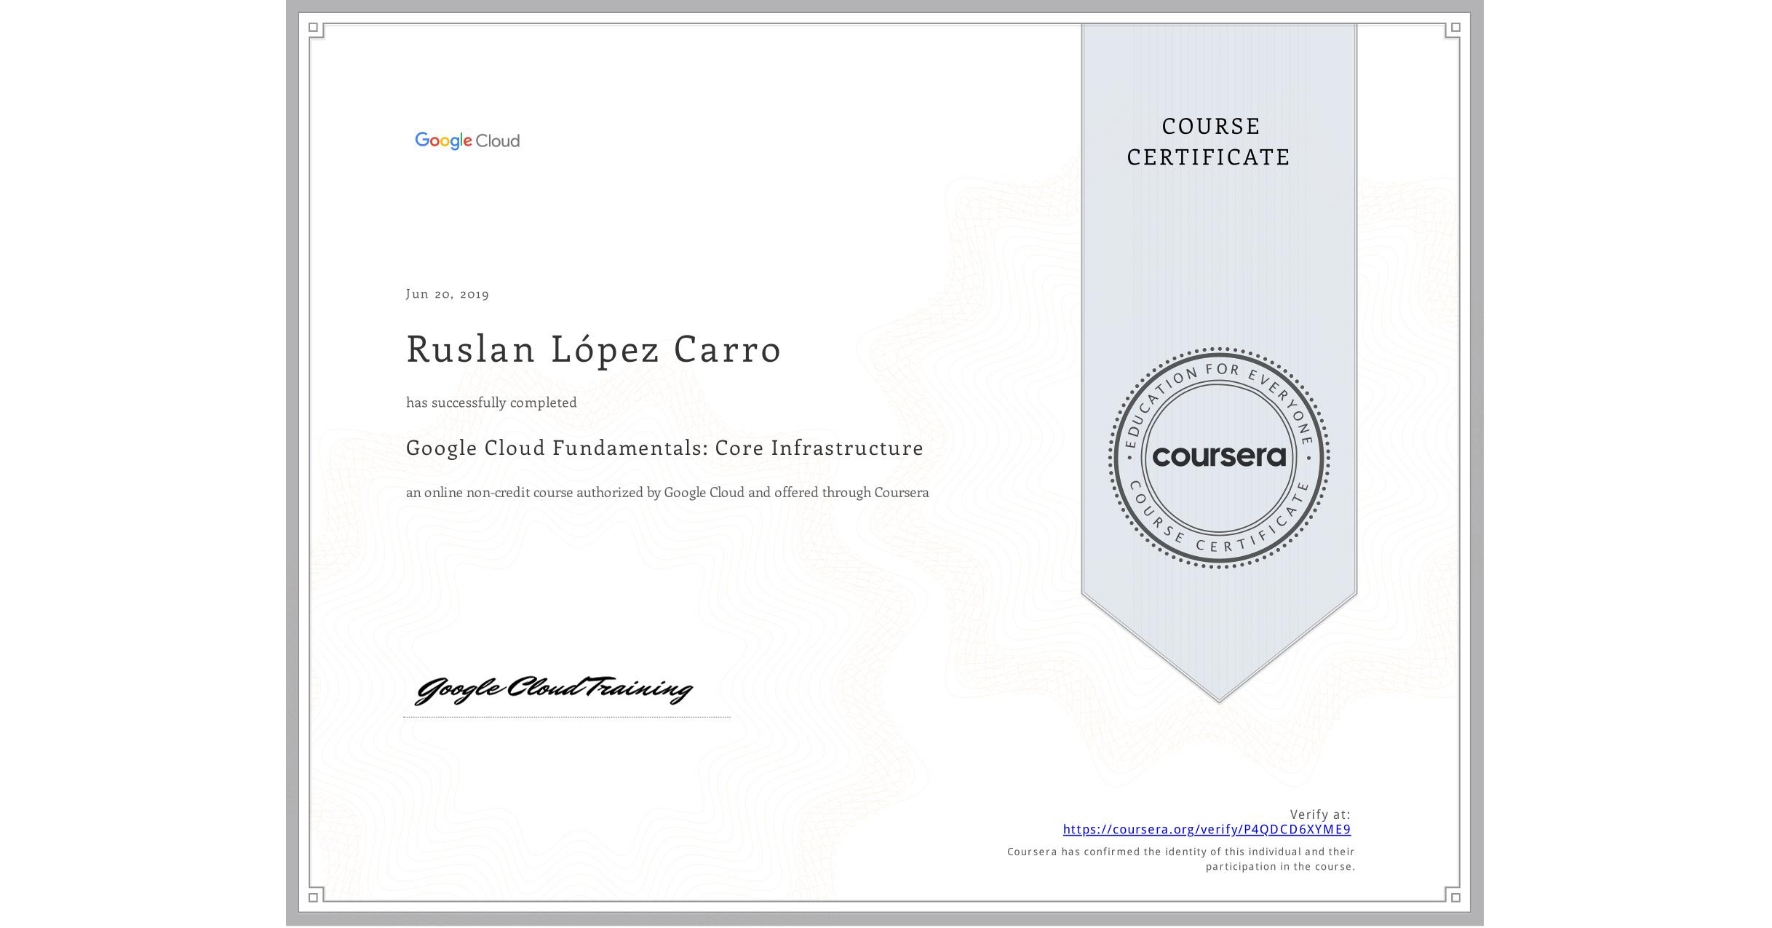 View certificate for Ruslan López Carro, Google Cloud Platform Fundamentals: Core Infrastructure, an online non-credit course authorized by Google Cloud and offered through Coursera